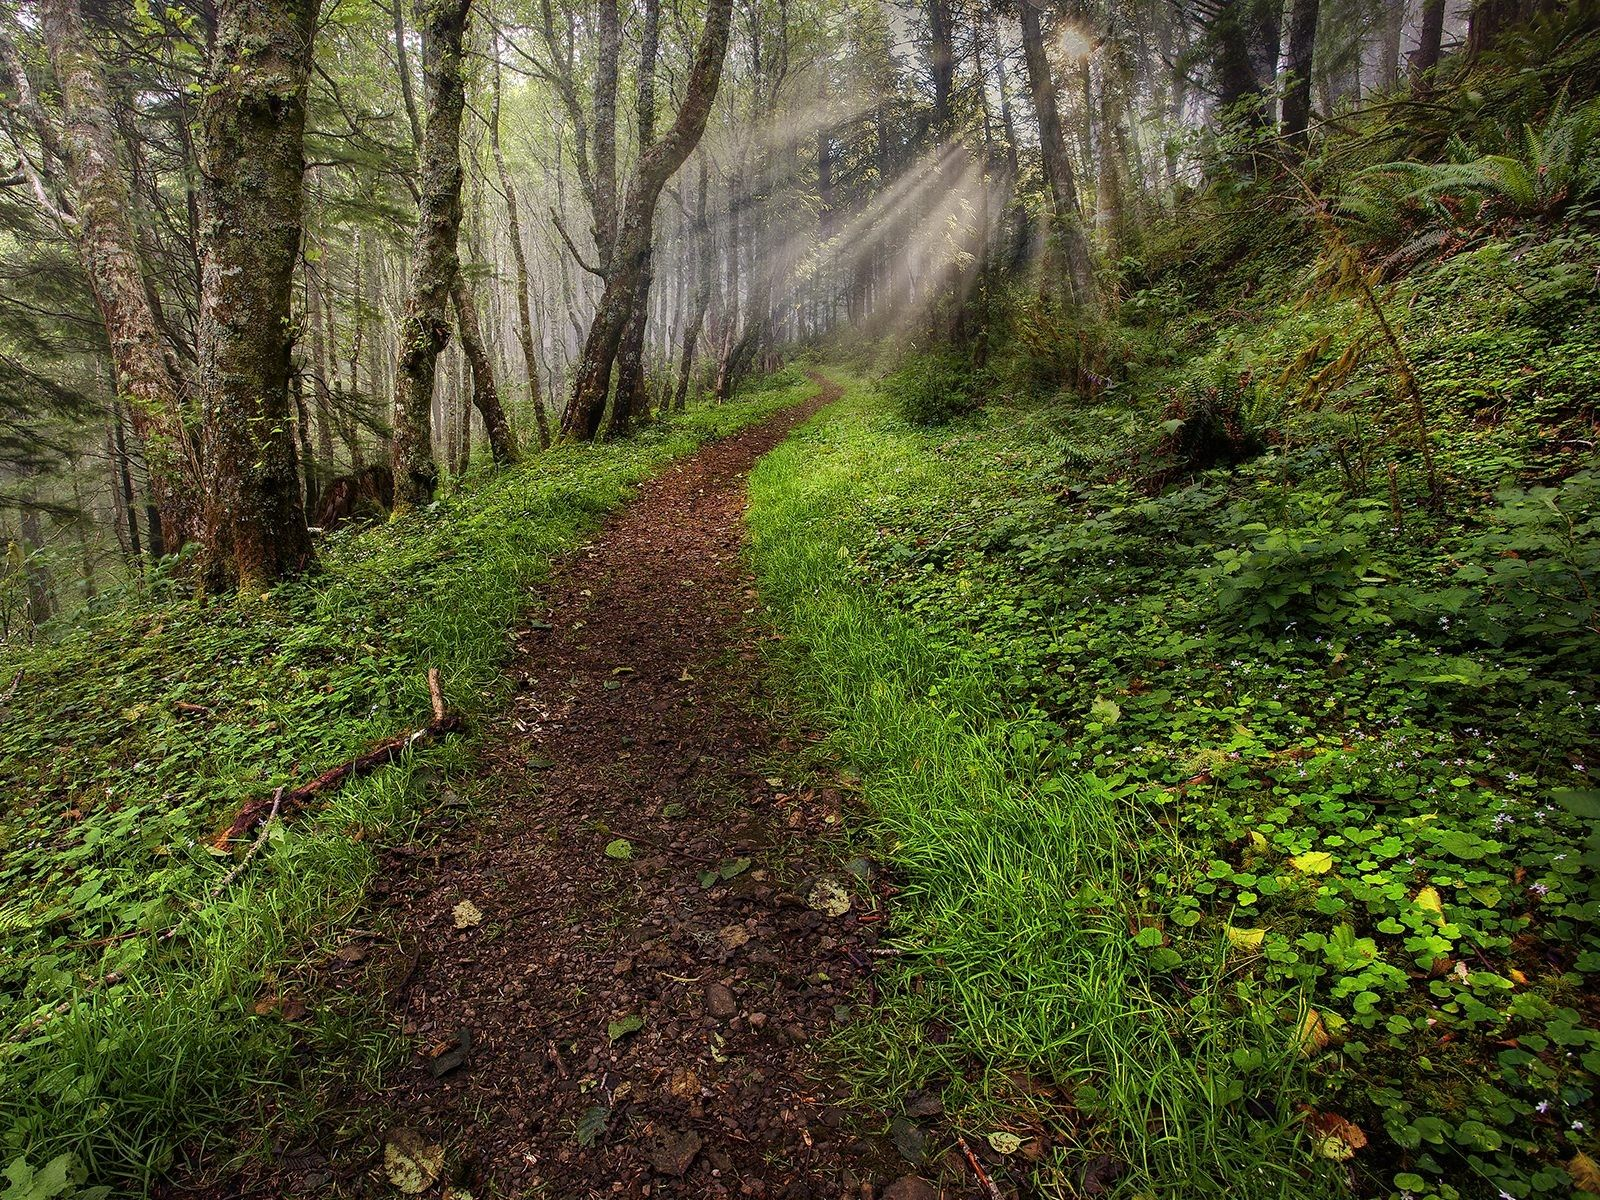 landscapes nature trees forest sunlight roads #trailrunning